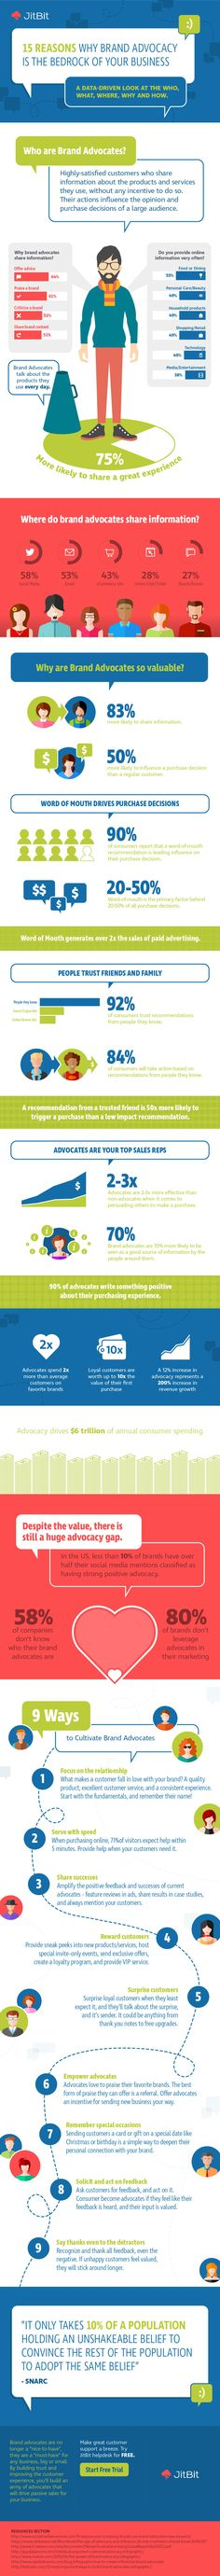 15 Reasons Why Brand Advocacy is the Bedrock of Your Business [Infographic]